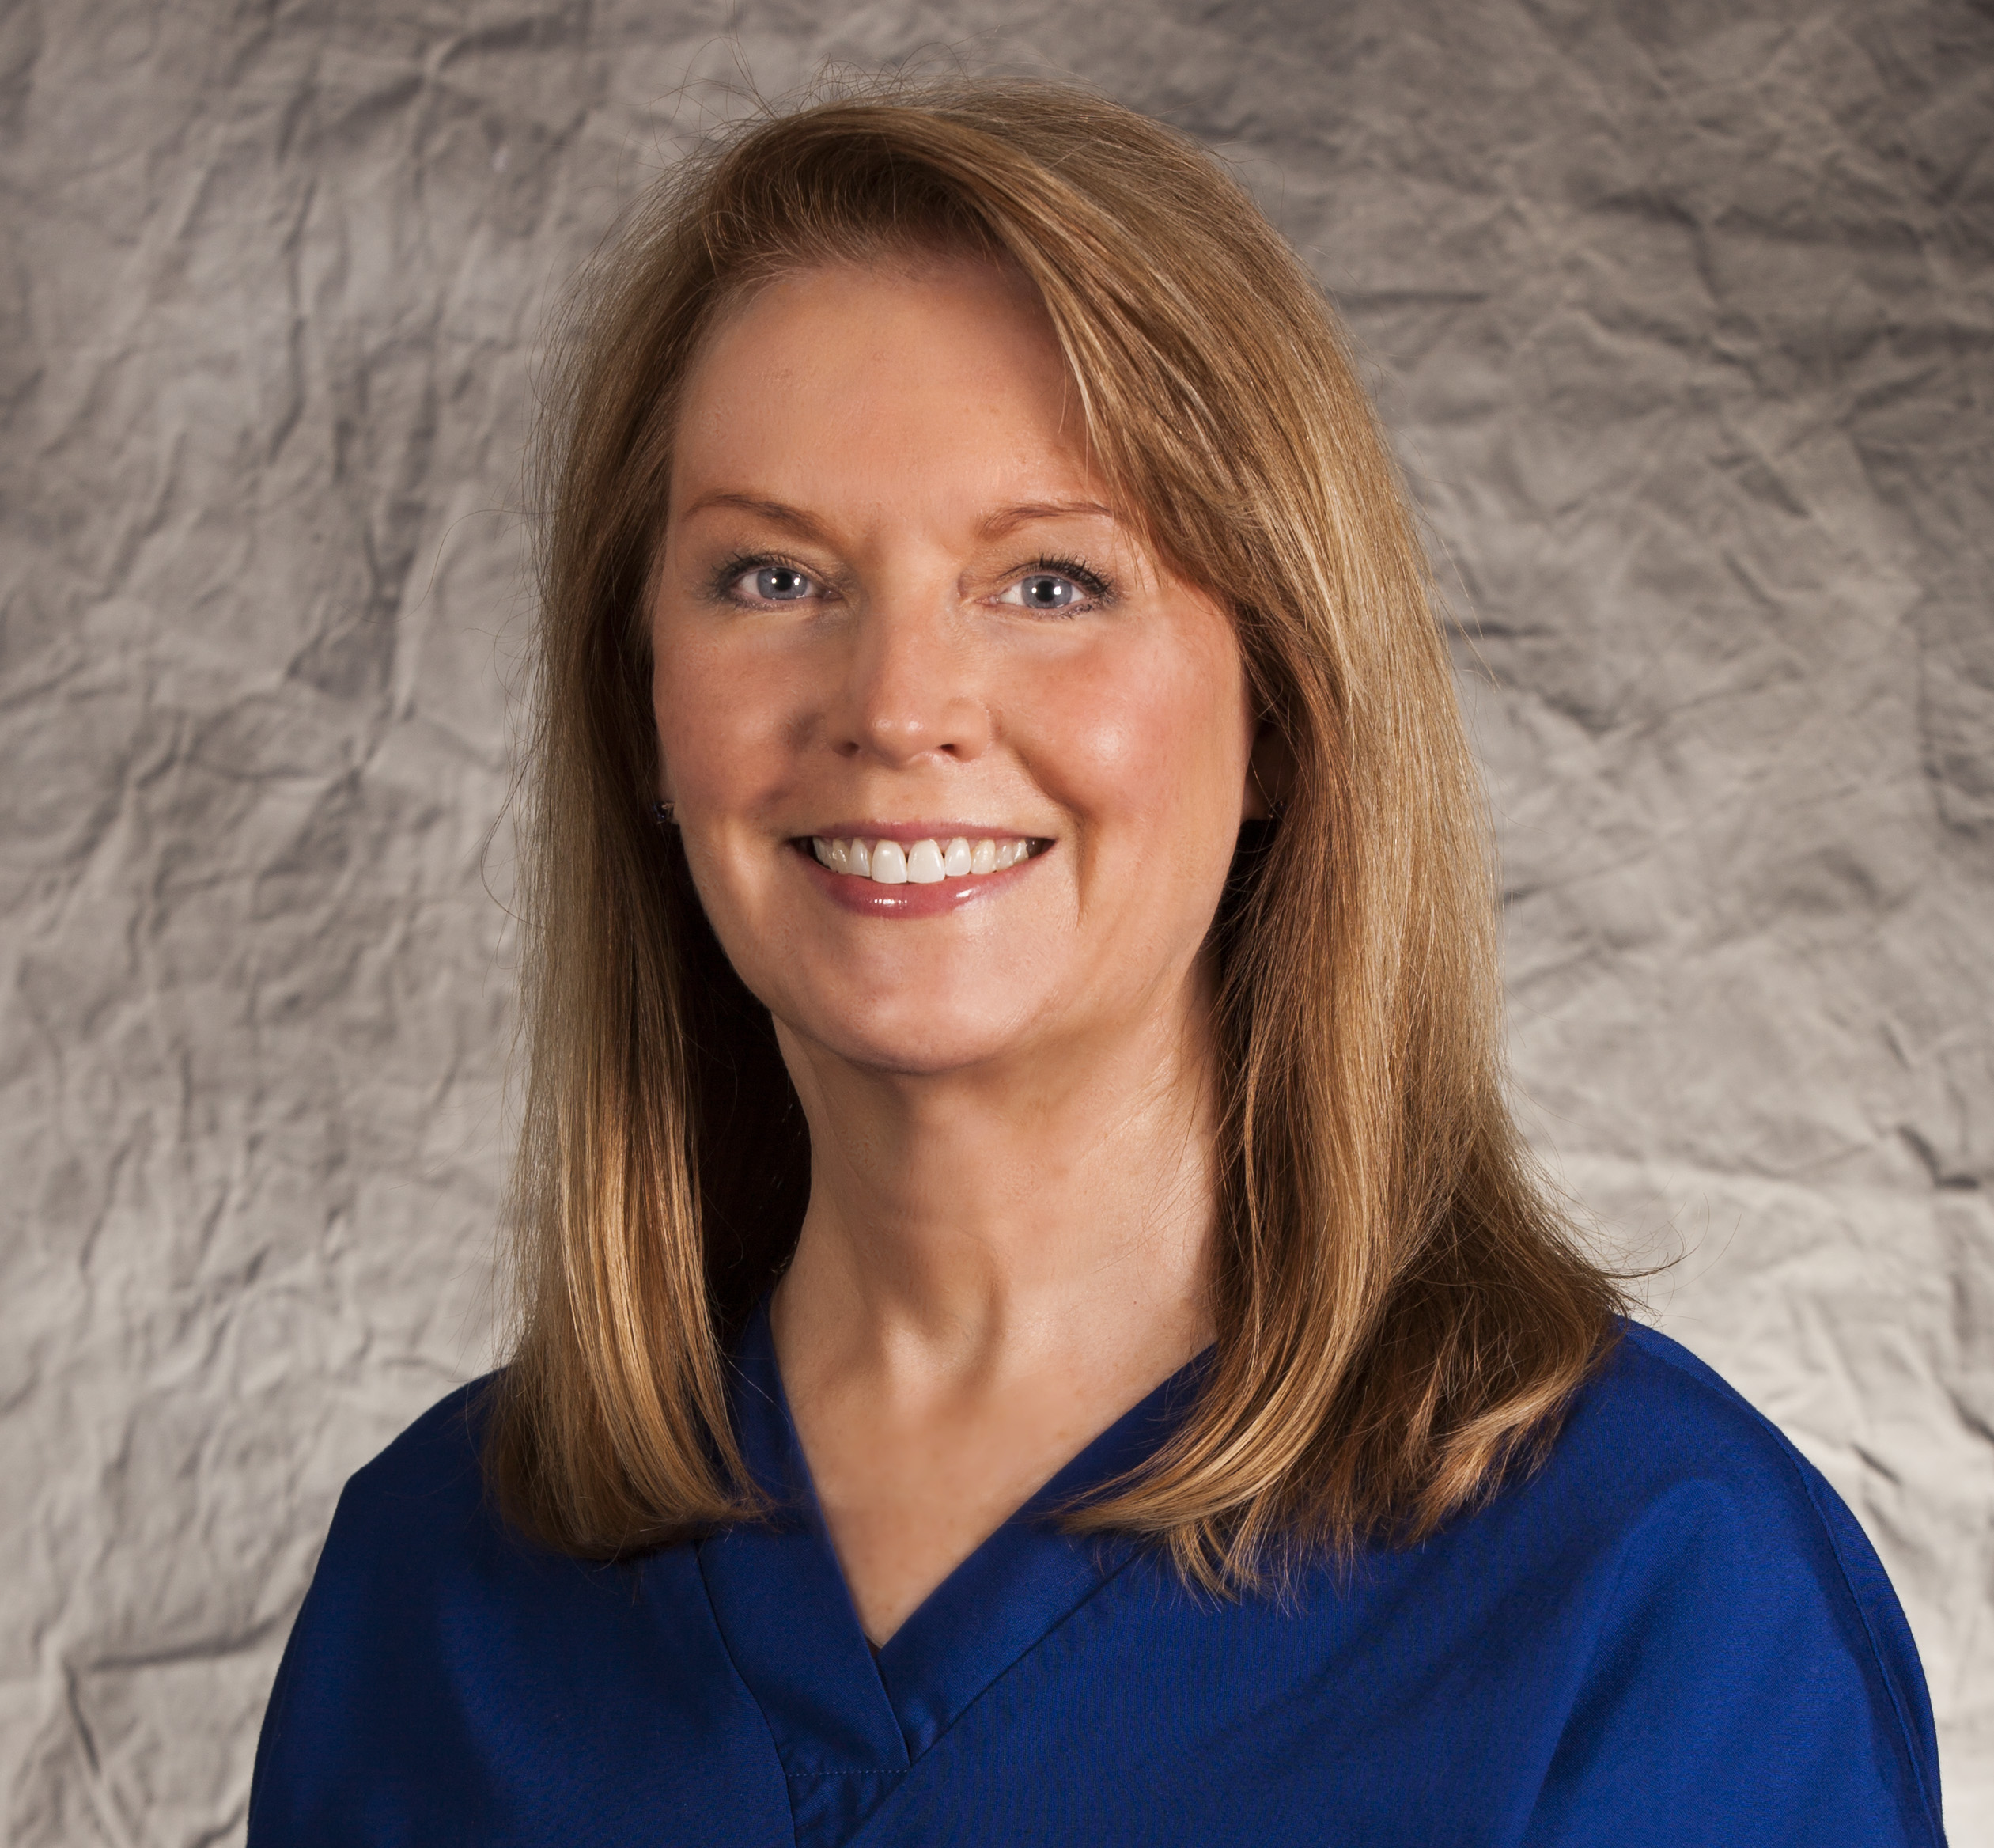 Meet Maureen - Strongsville Center for Cosmetic & Implant Dentistry Hygienist